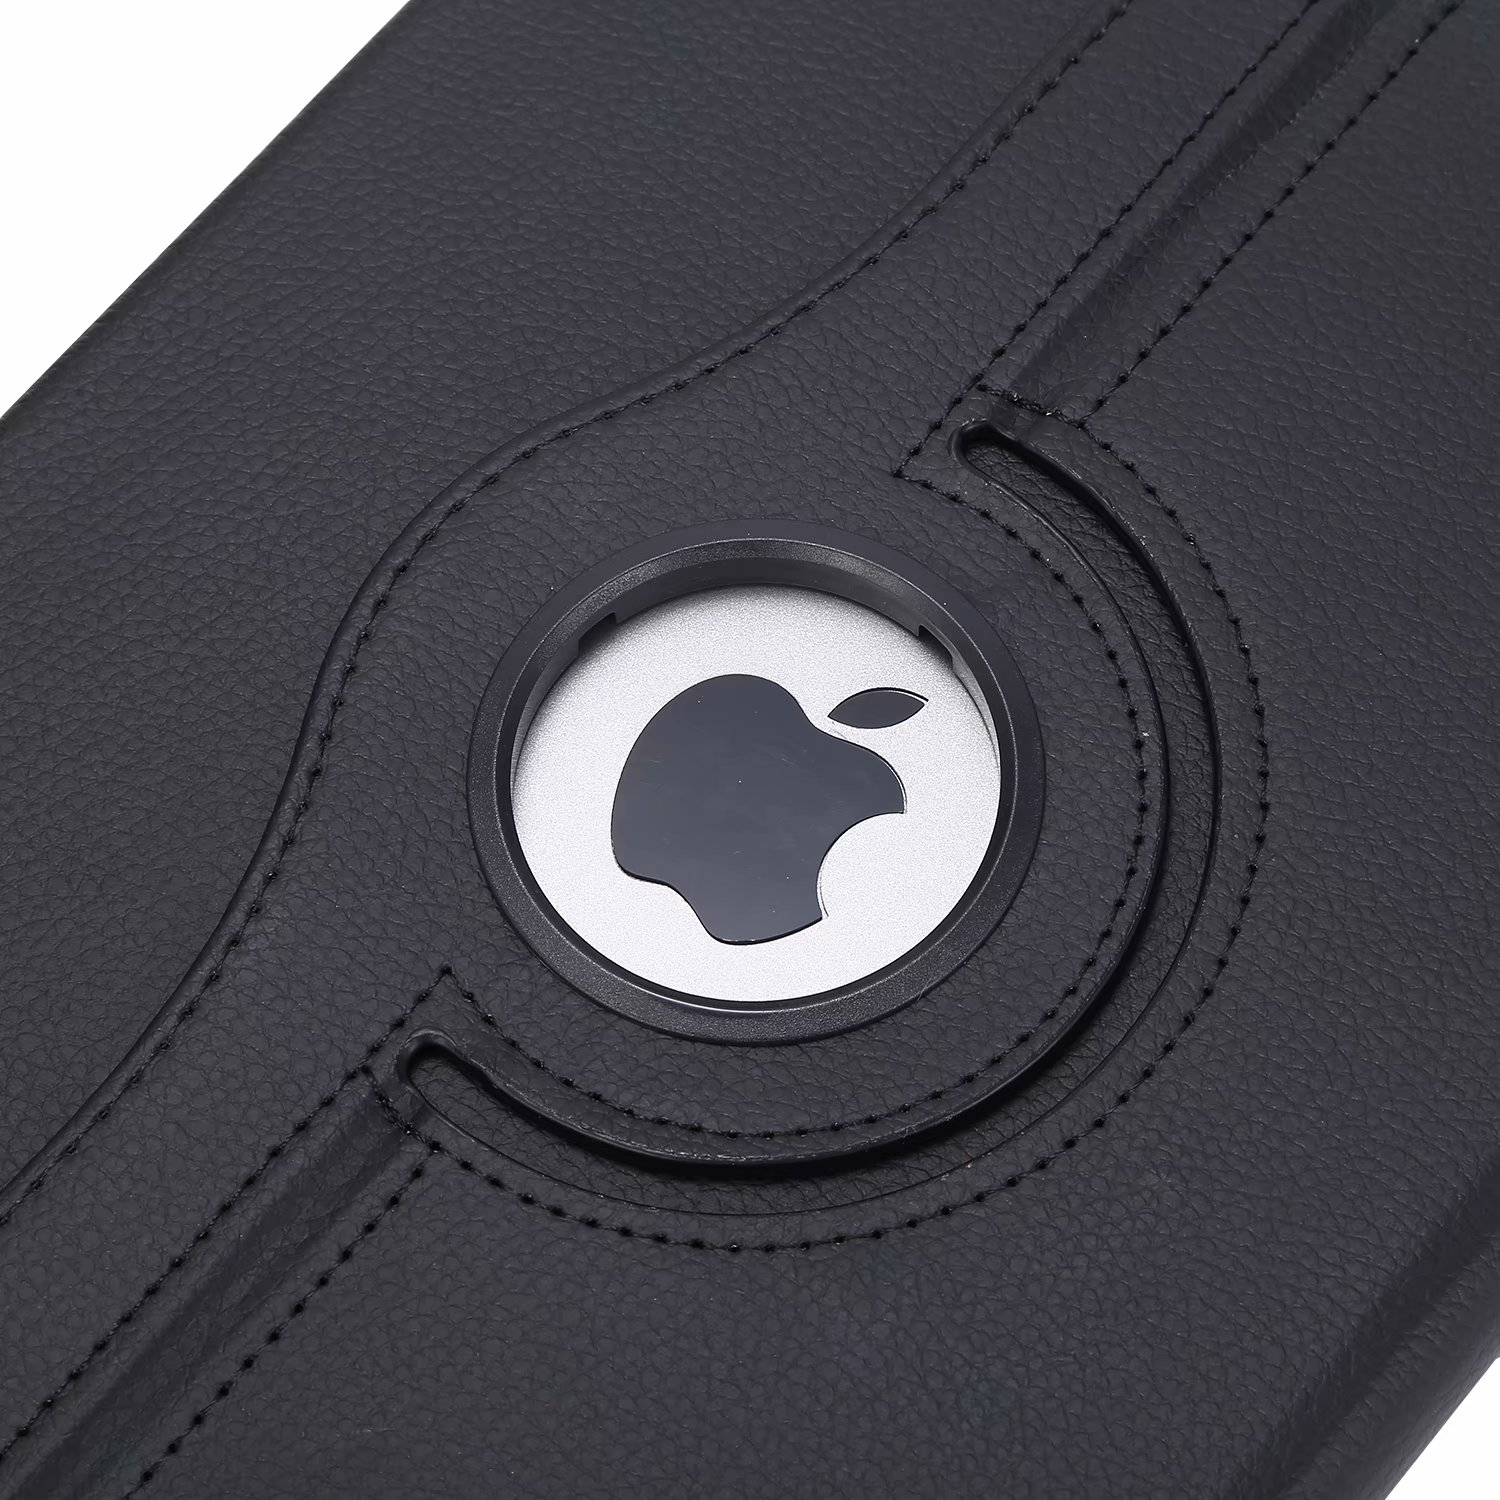 2021/2020/2018 Case Degree A2230 360 A2228 A2068 11 A2013 Cover Pro A1934 A1980 for iPad